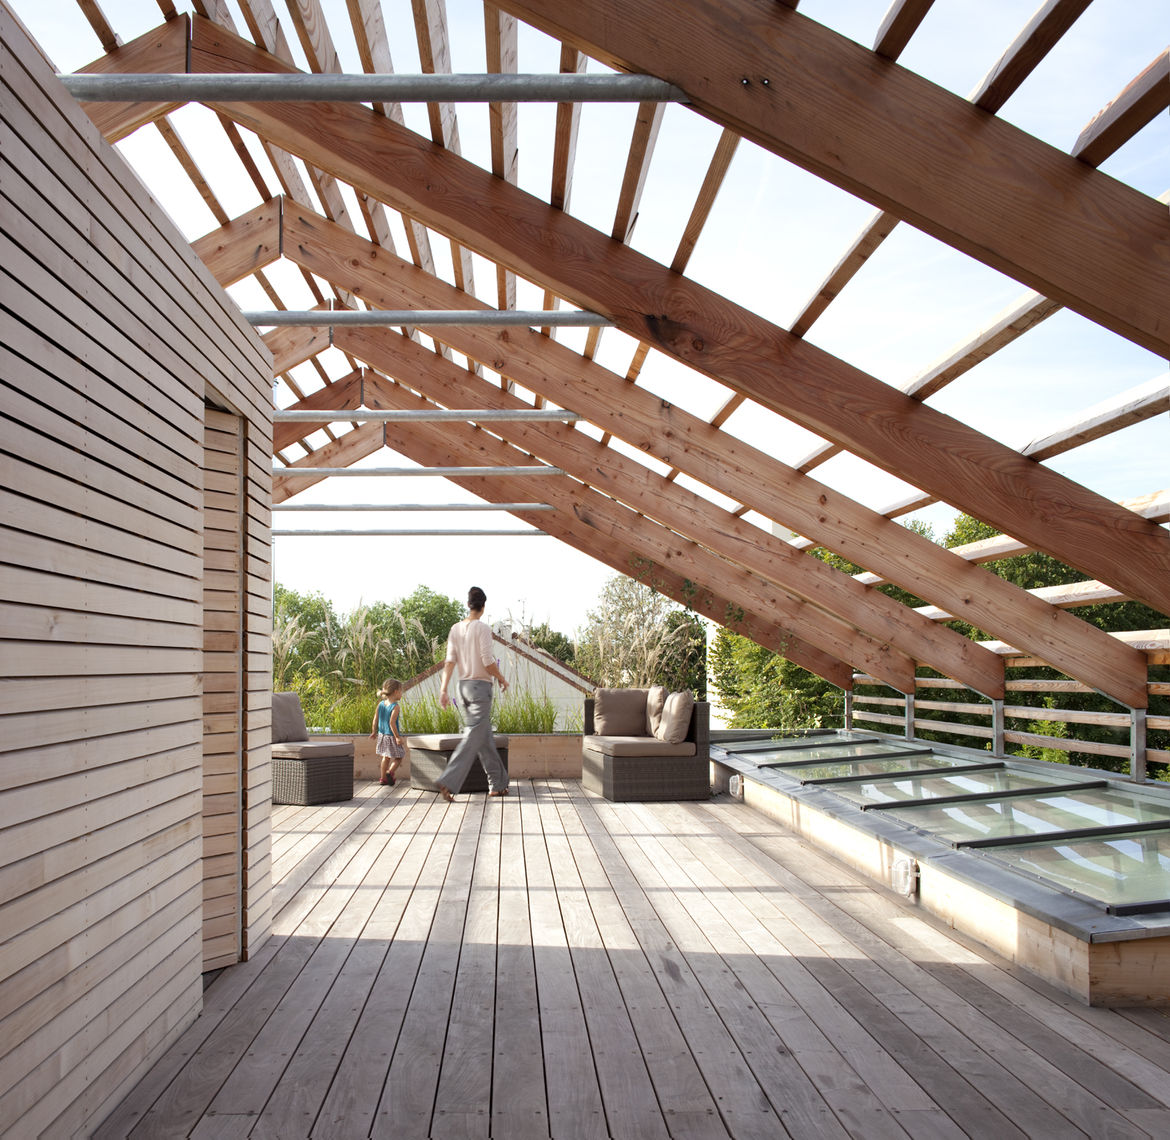 Roof terrace and garden of eco-friendly prefab Paris home by Djuric Tardio Architectes